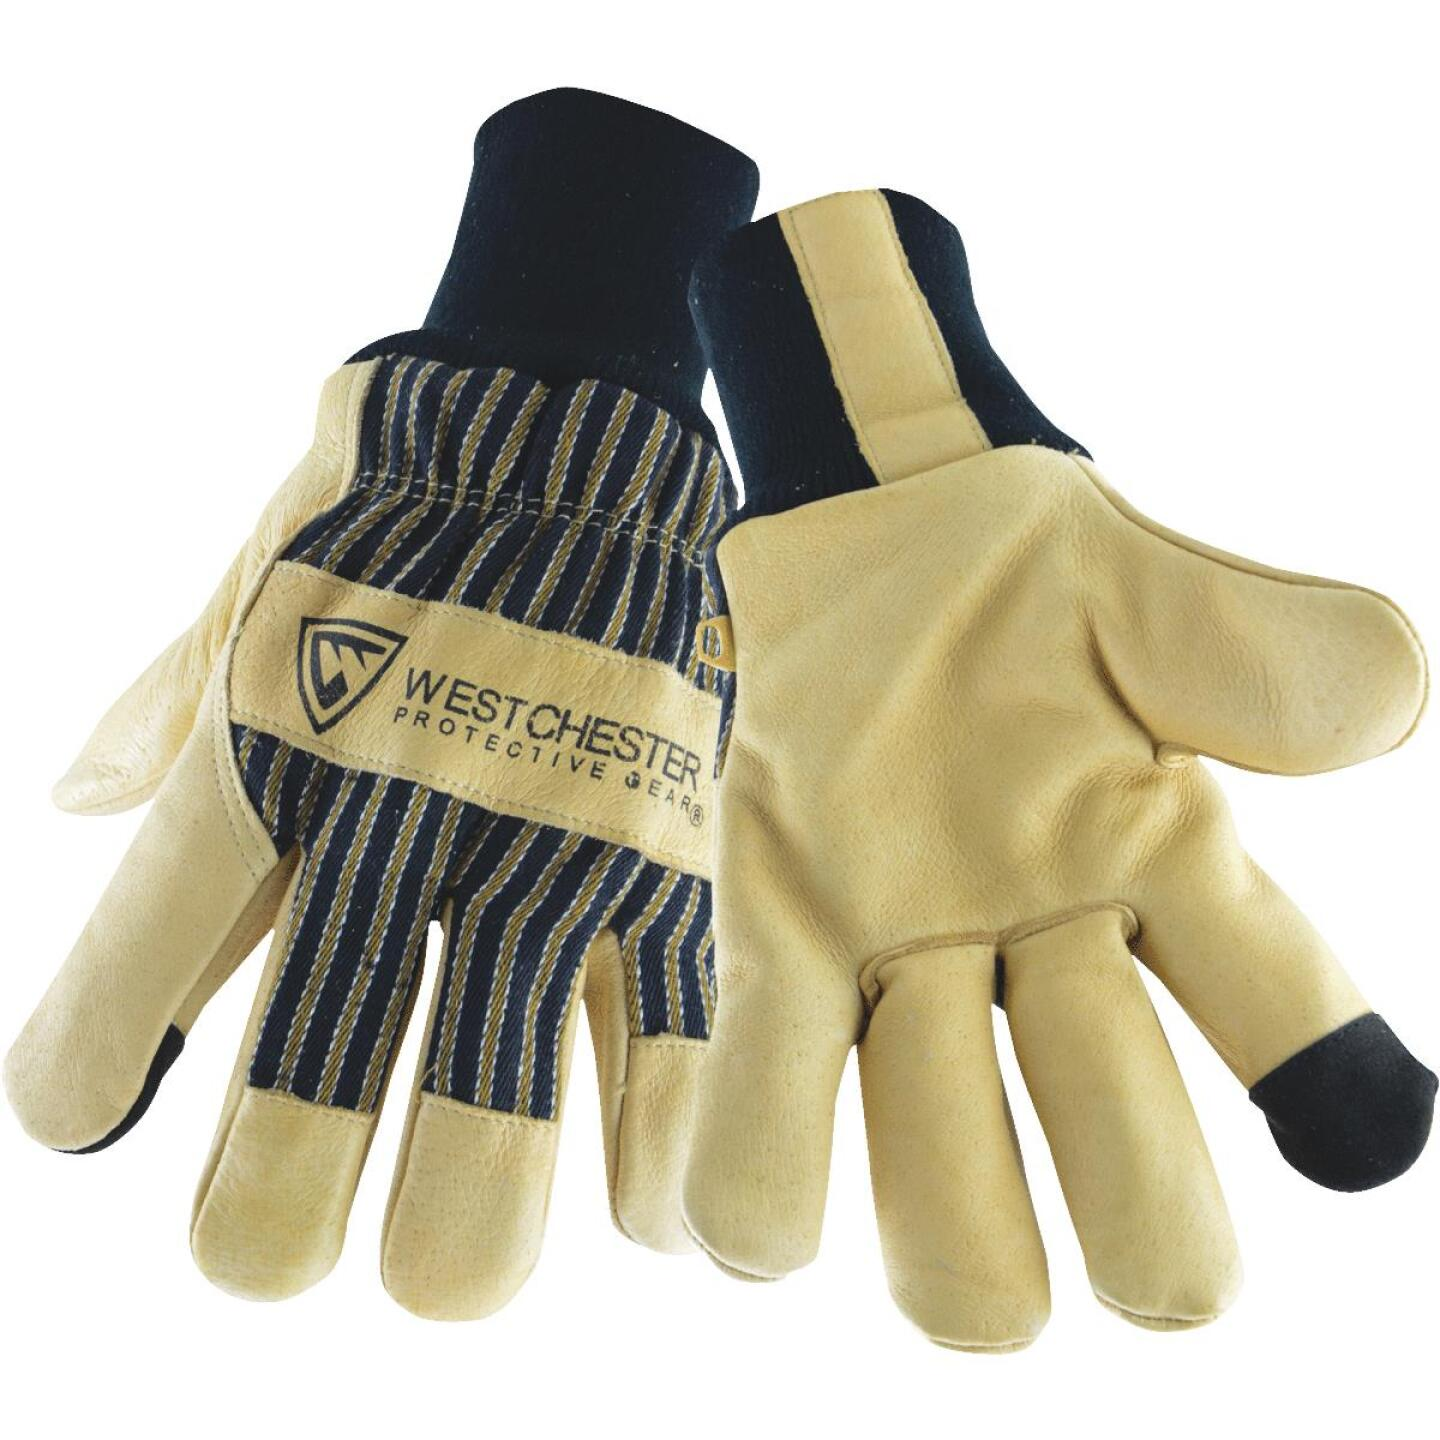 West Chester Men's Large Pigskin Leather Winter Glove with Knit Wrist Image 1